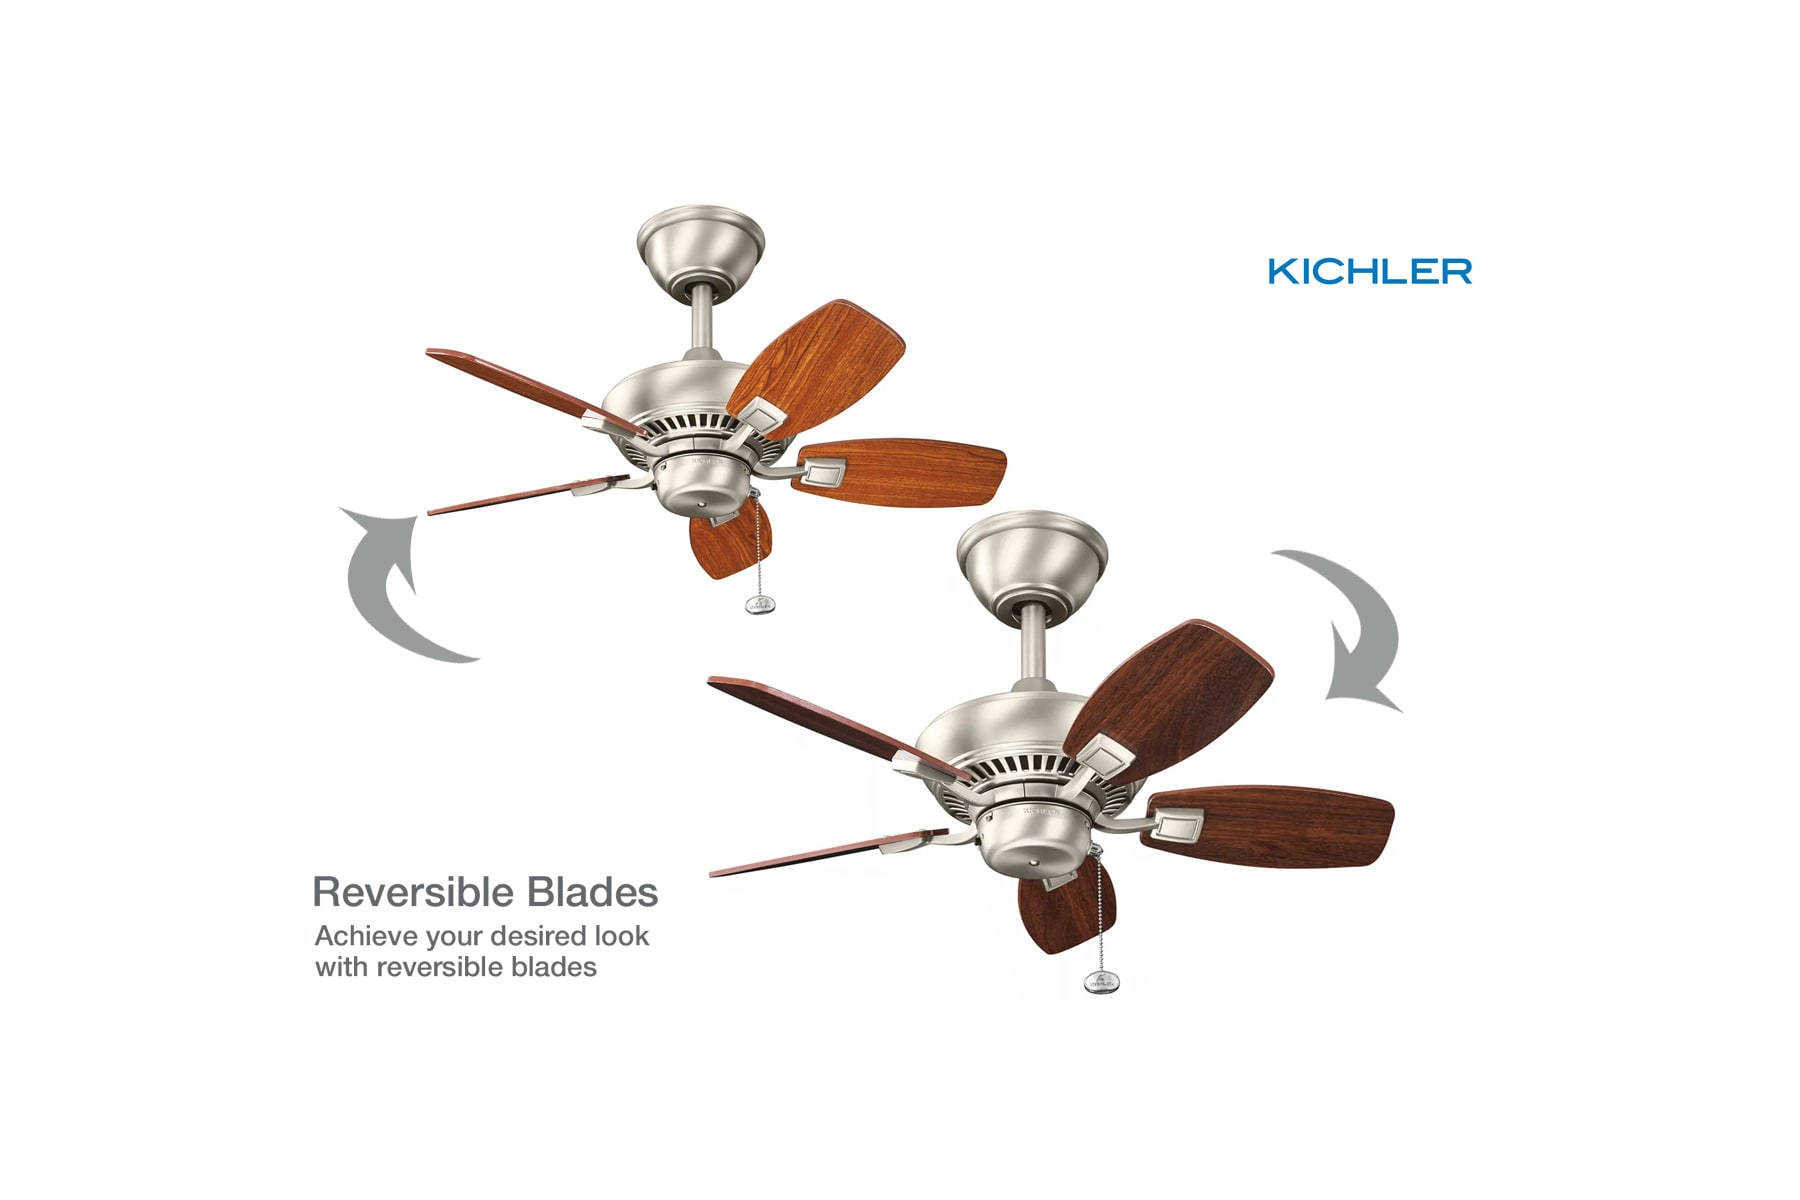 Kichler 300103obb Oil Brushed Bronze Canfield 30 Indoor Outdoor Ceiling Fan Wiring Diagram With Blades And Downrod